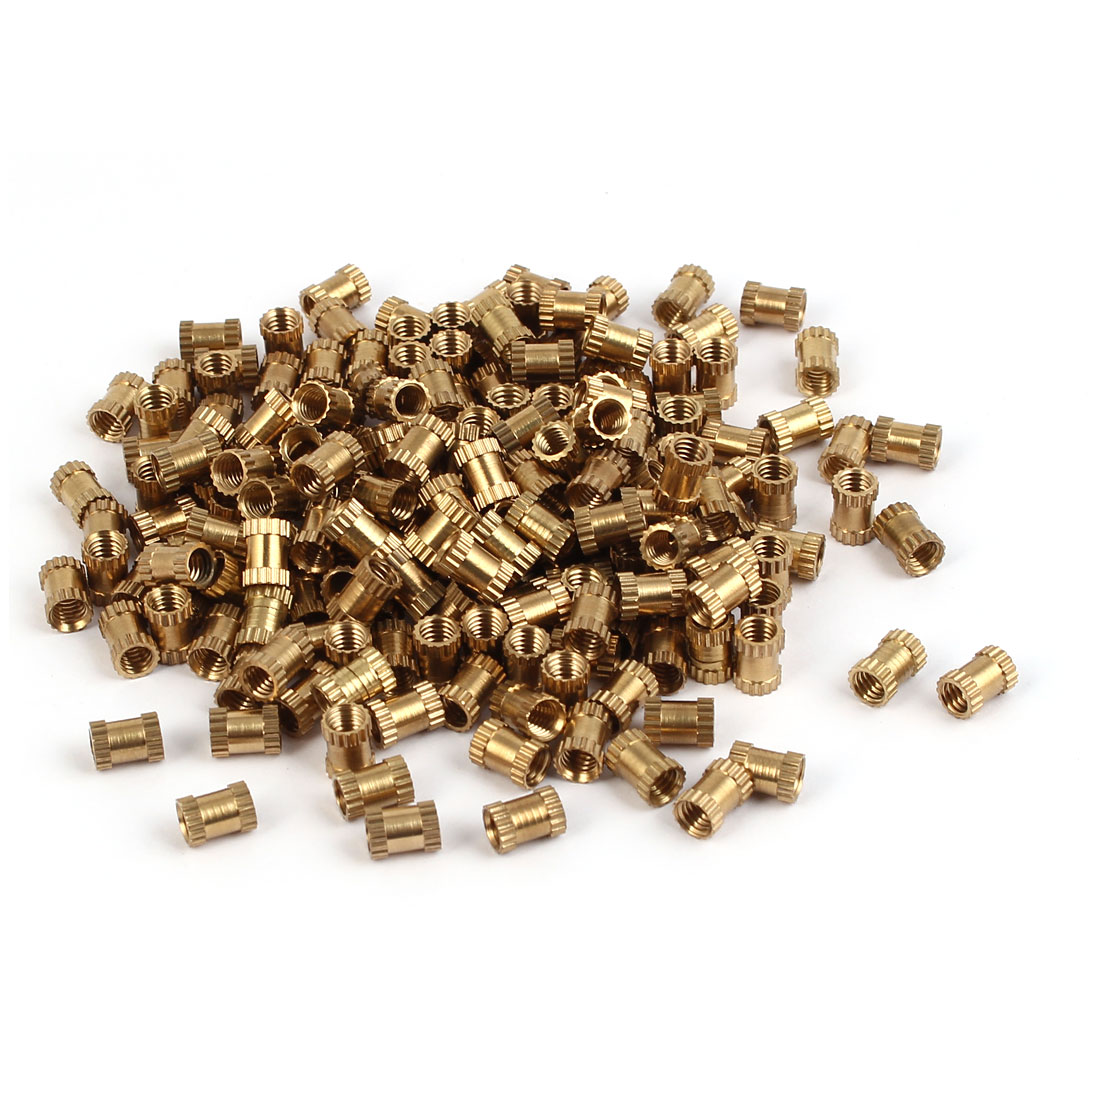 M4 x 7mm Brass Cylinder Injection Molding Knurled Insert Embedded Nuts 200PCS